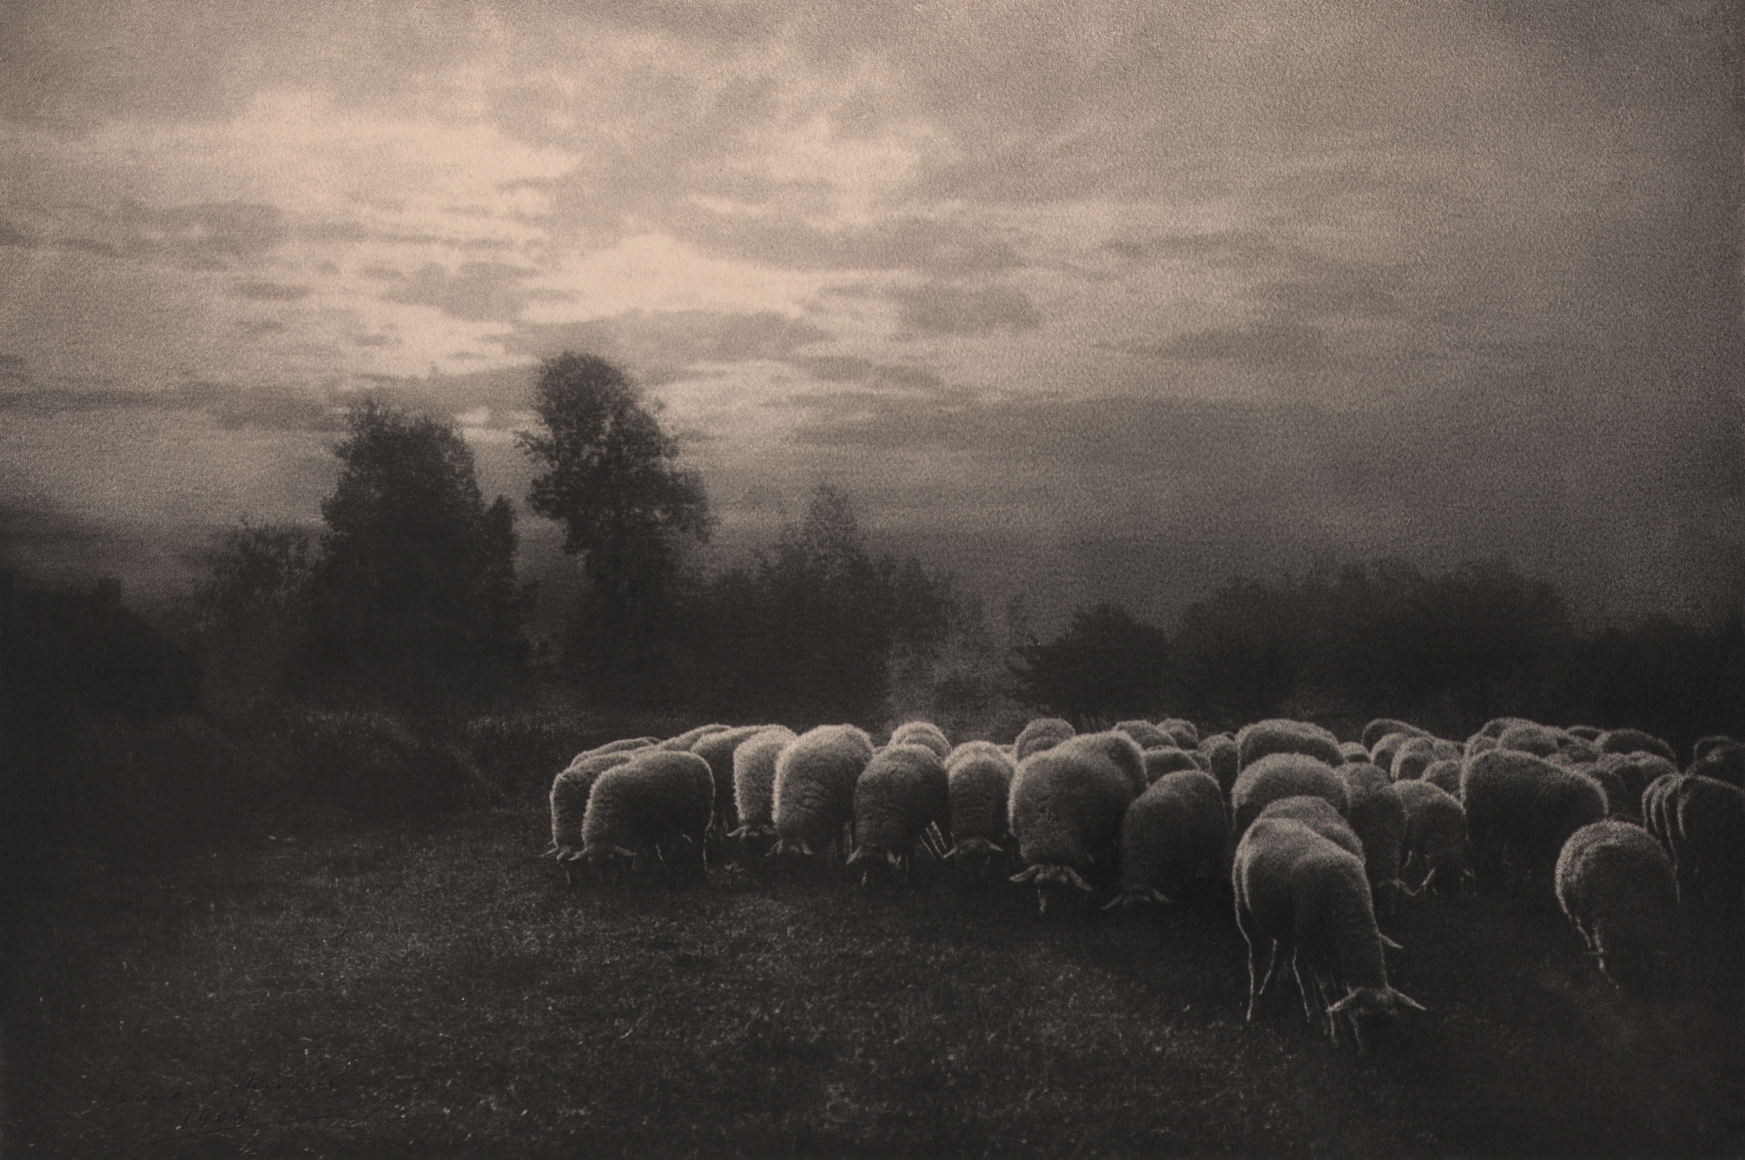 16. Léonard Misonne, Mouton au crèpuscule, 1908. Herd of sheep graze in the foreground against a backdrop of low trees and cloudy sky. Sepia-toned print.